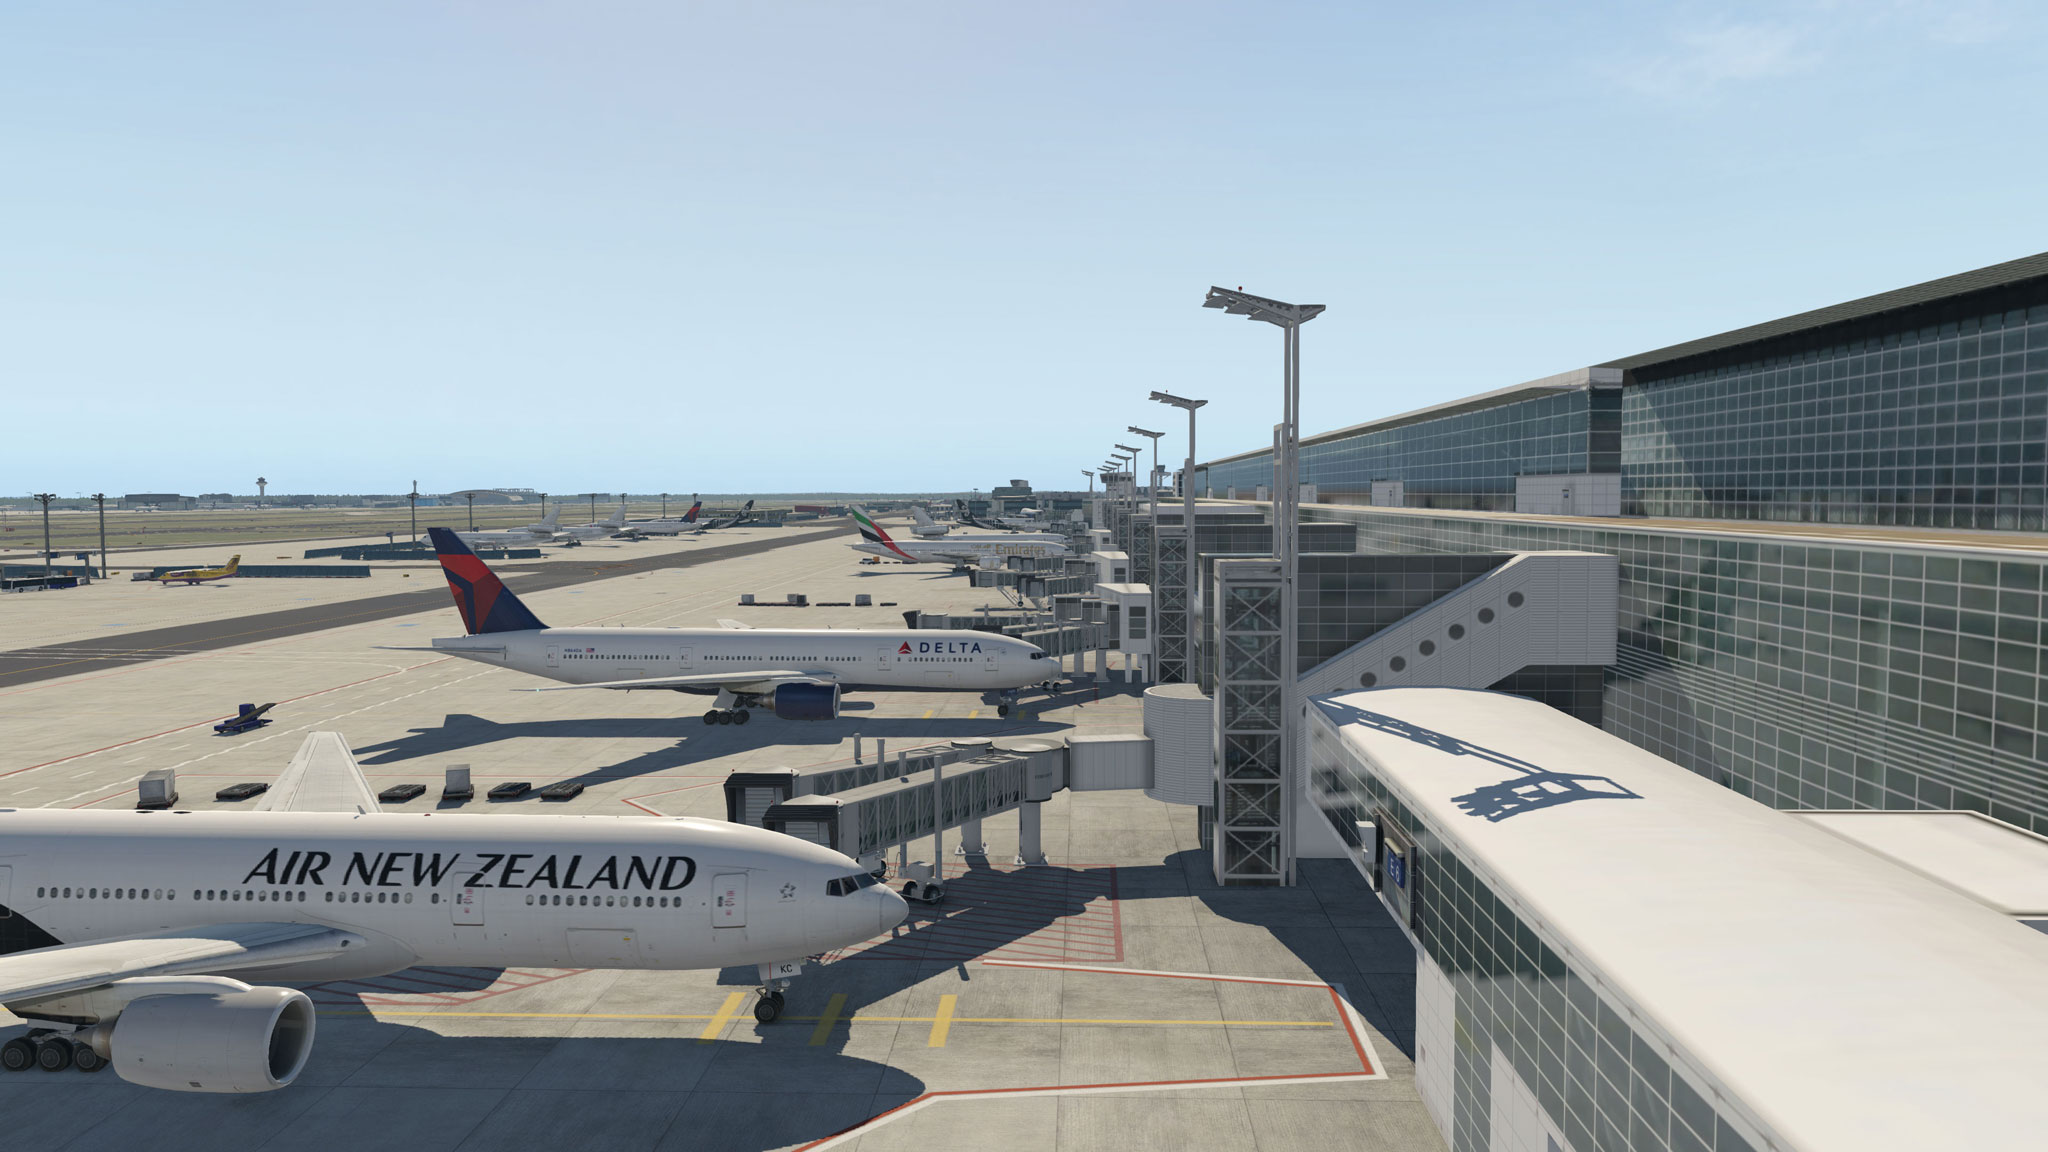 Airport Frankfurt Scenery for X-Plane 11